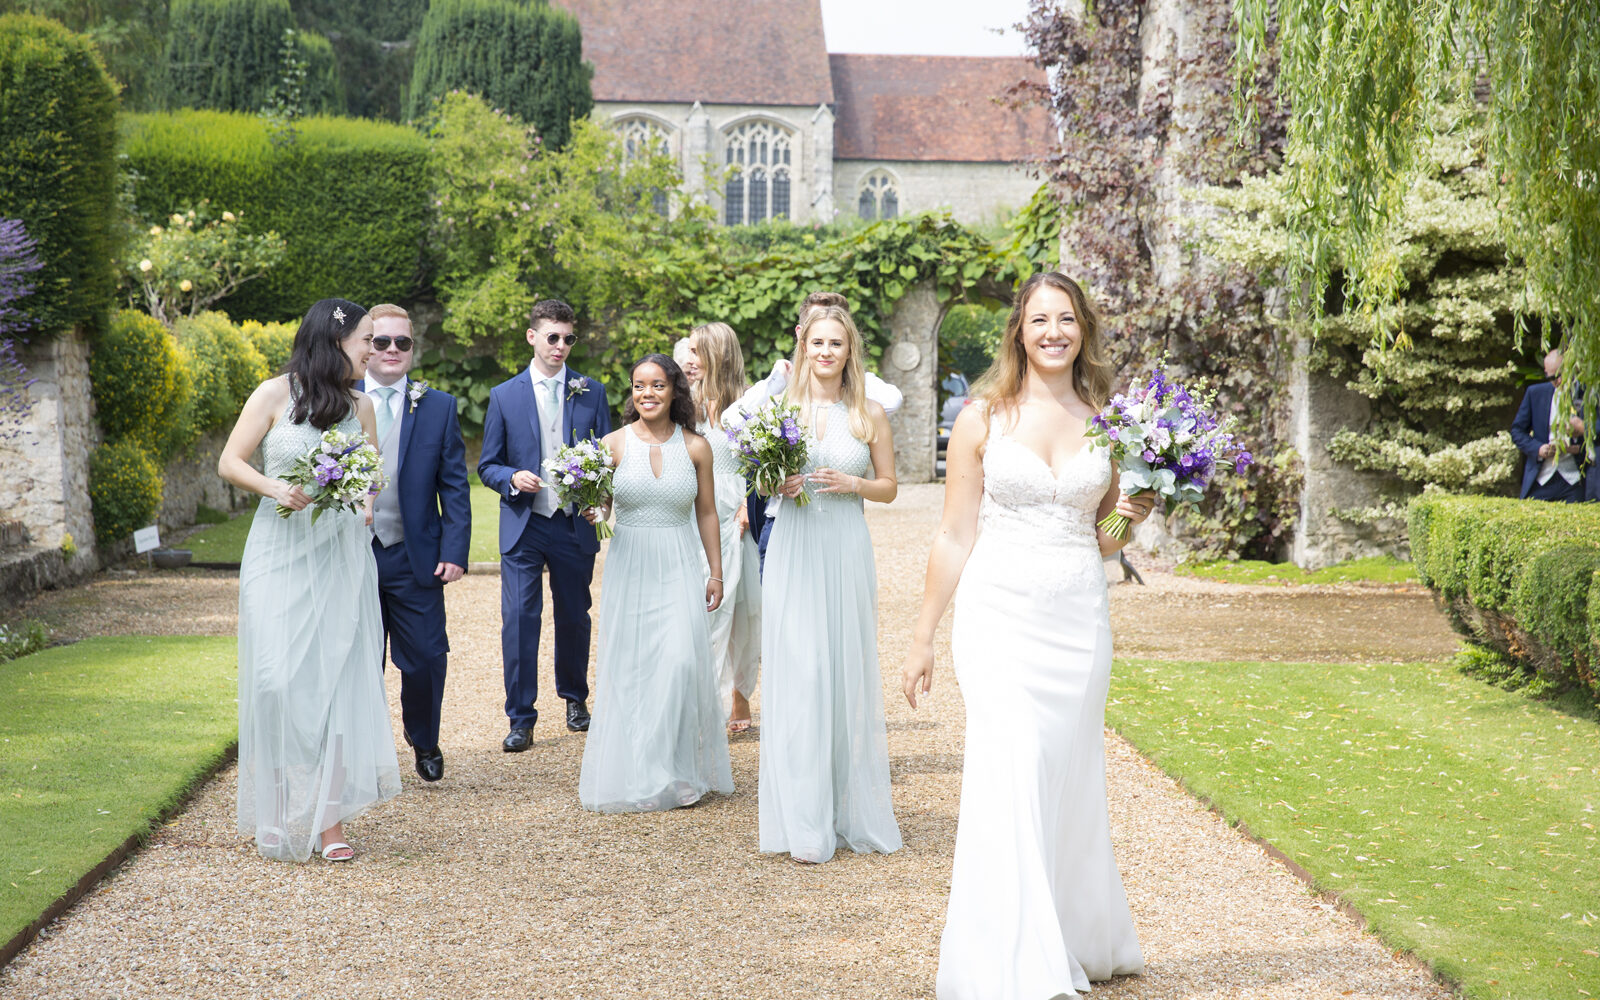 bride with bridal party walking around the grounds at Nettlestead Park in Maidstone. Captured by Kent wedding photographer, Victoria Green.